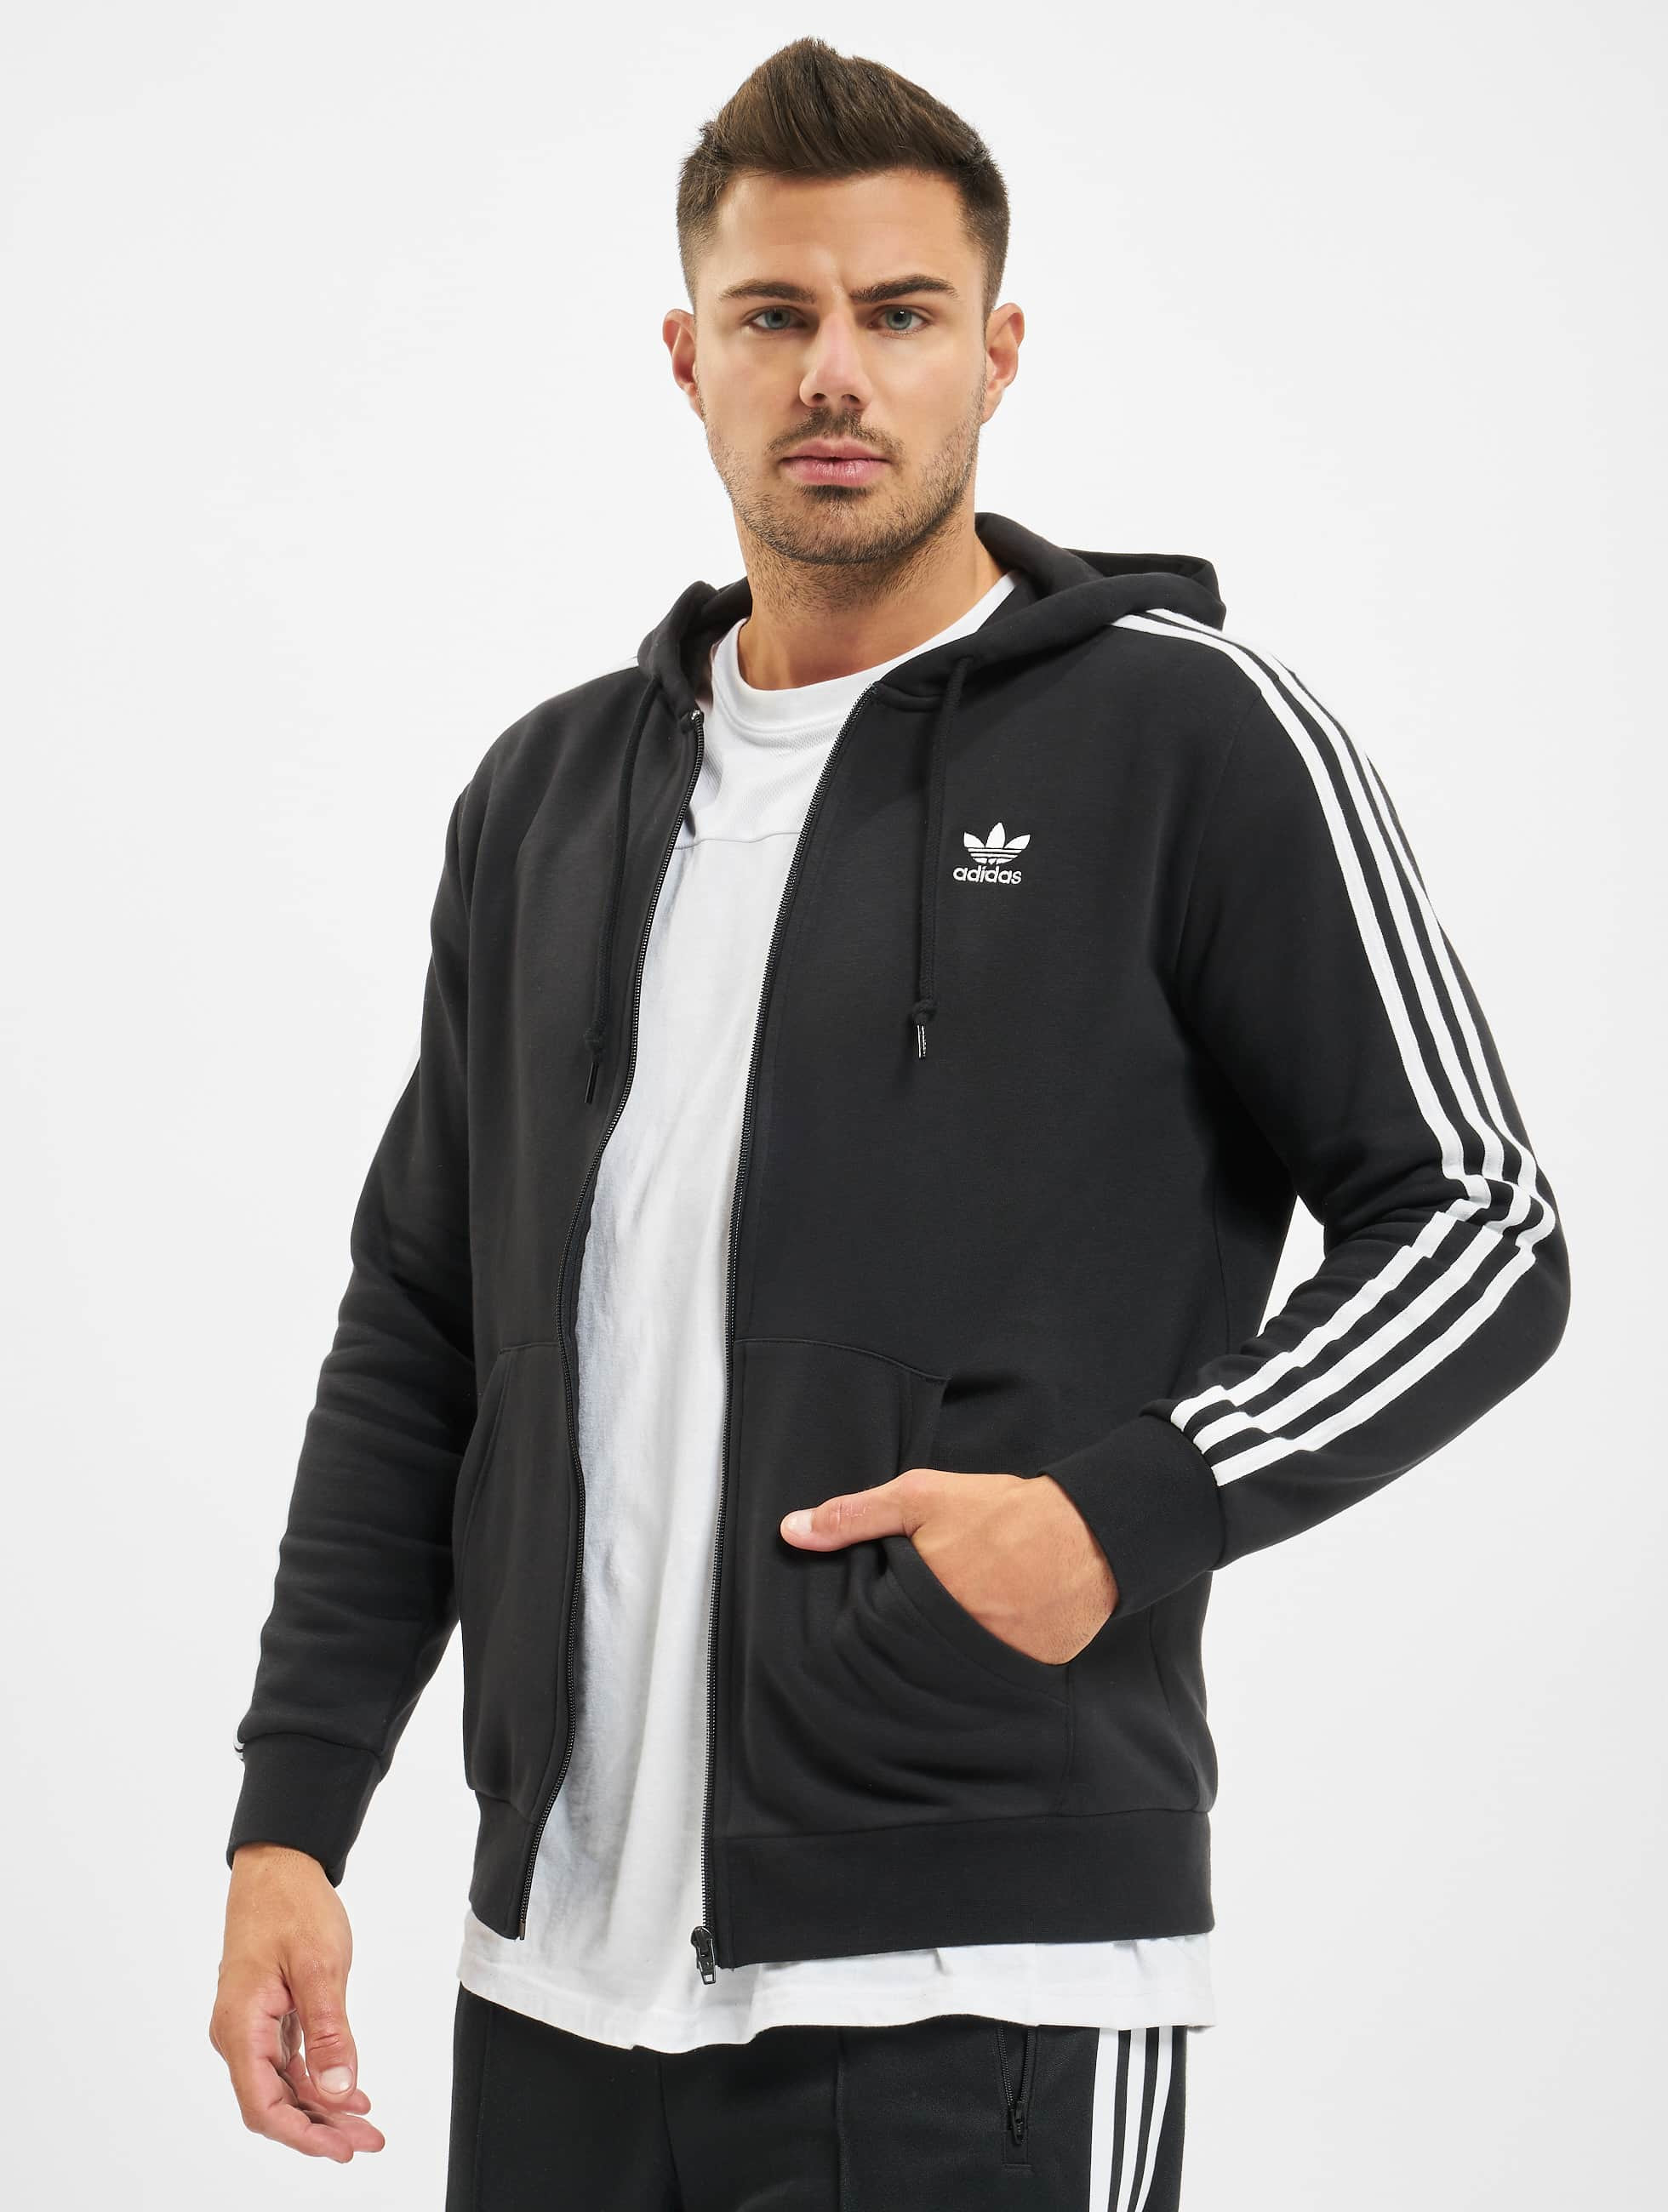 ADIDAS ORIGINALS Sweatjacke '3 Stripes Fz' in schwarz weiß